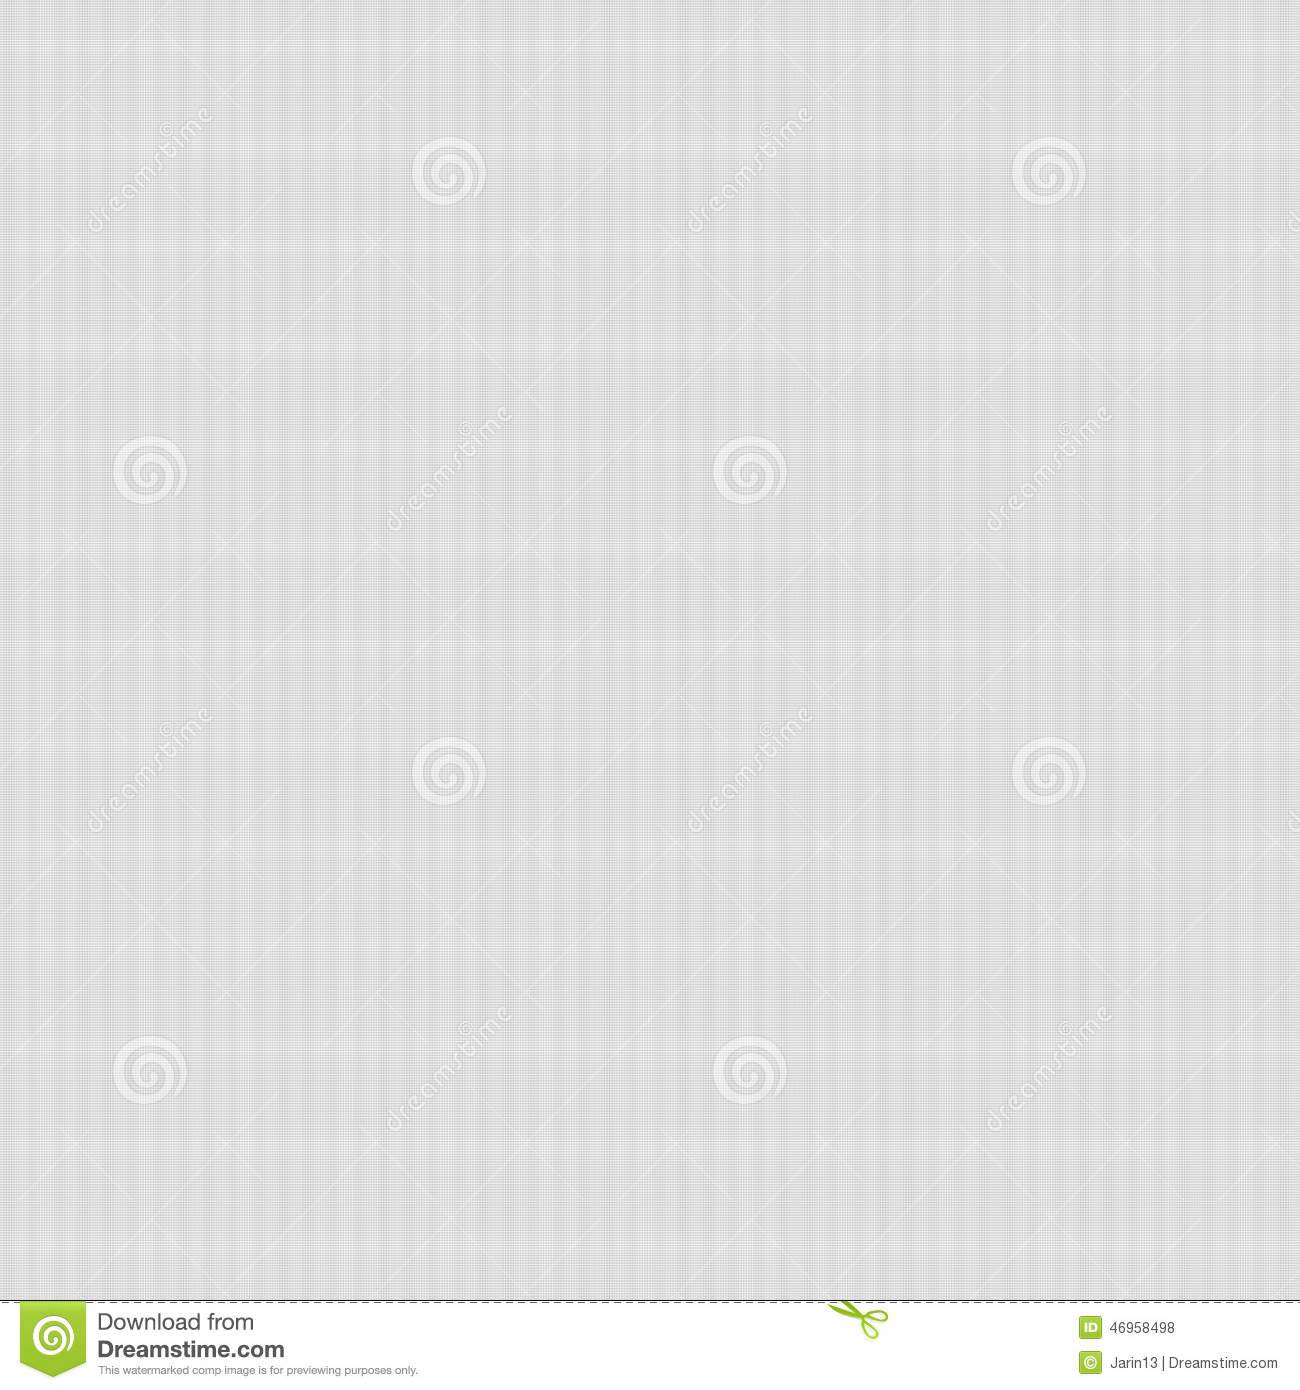 Curtain Texture Seamless black and white pattern - possible for curtain, fabric, table